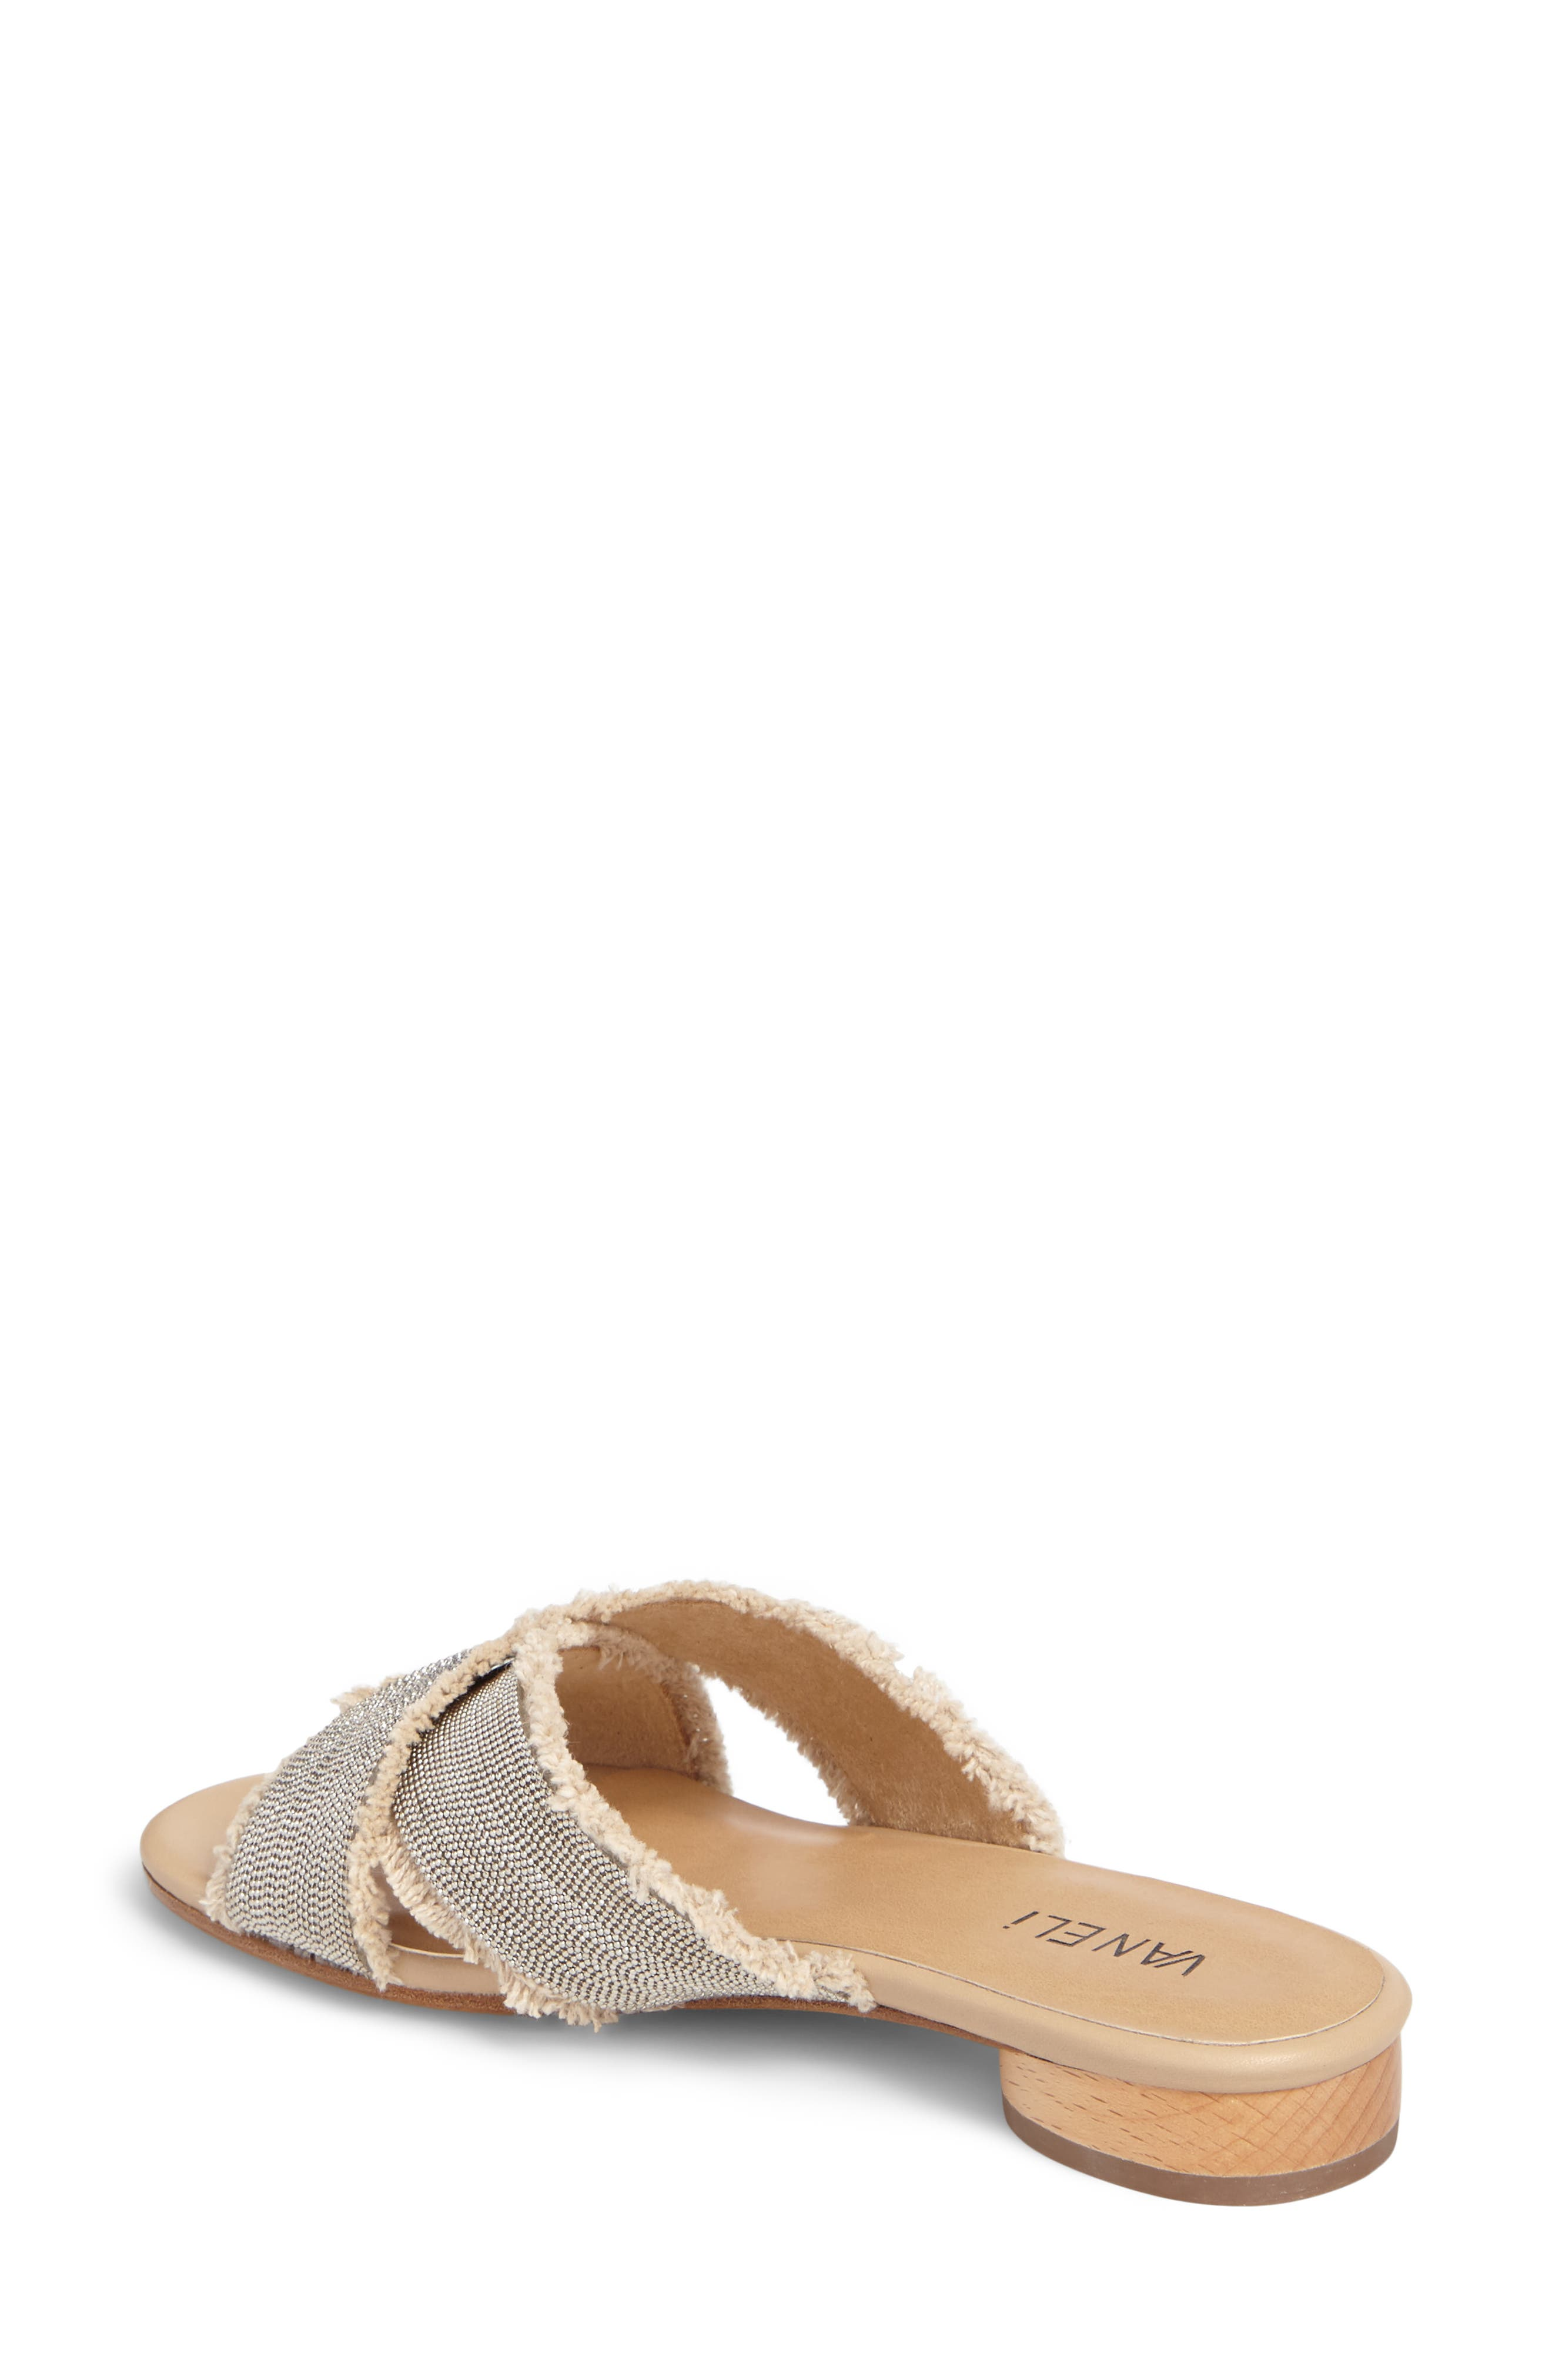 Baret Slide Sandal,                             Alternate thumbnail 2, color,